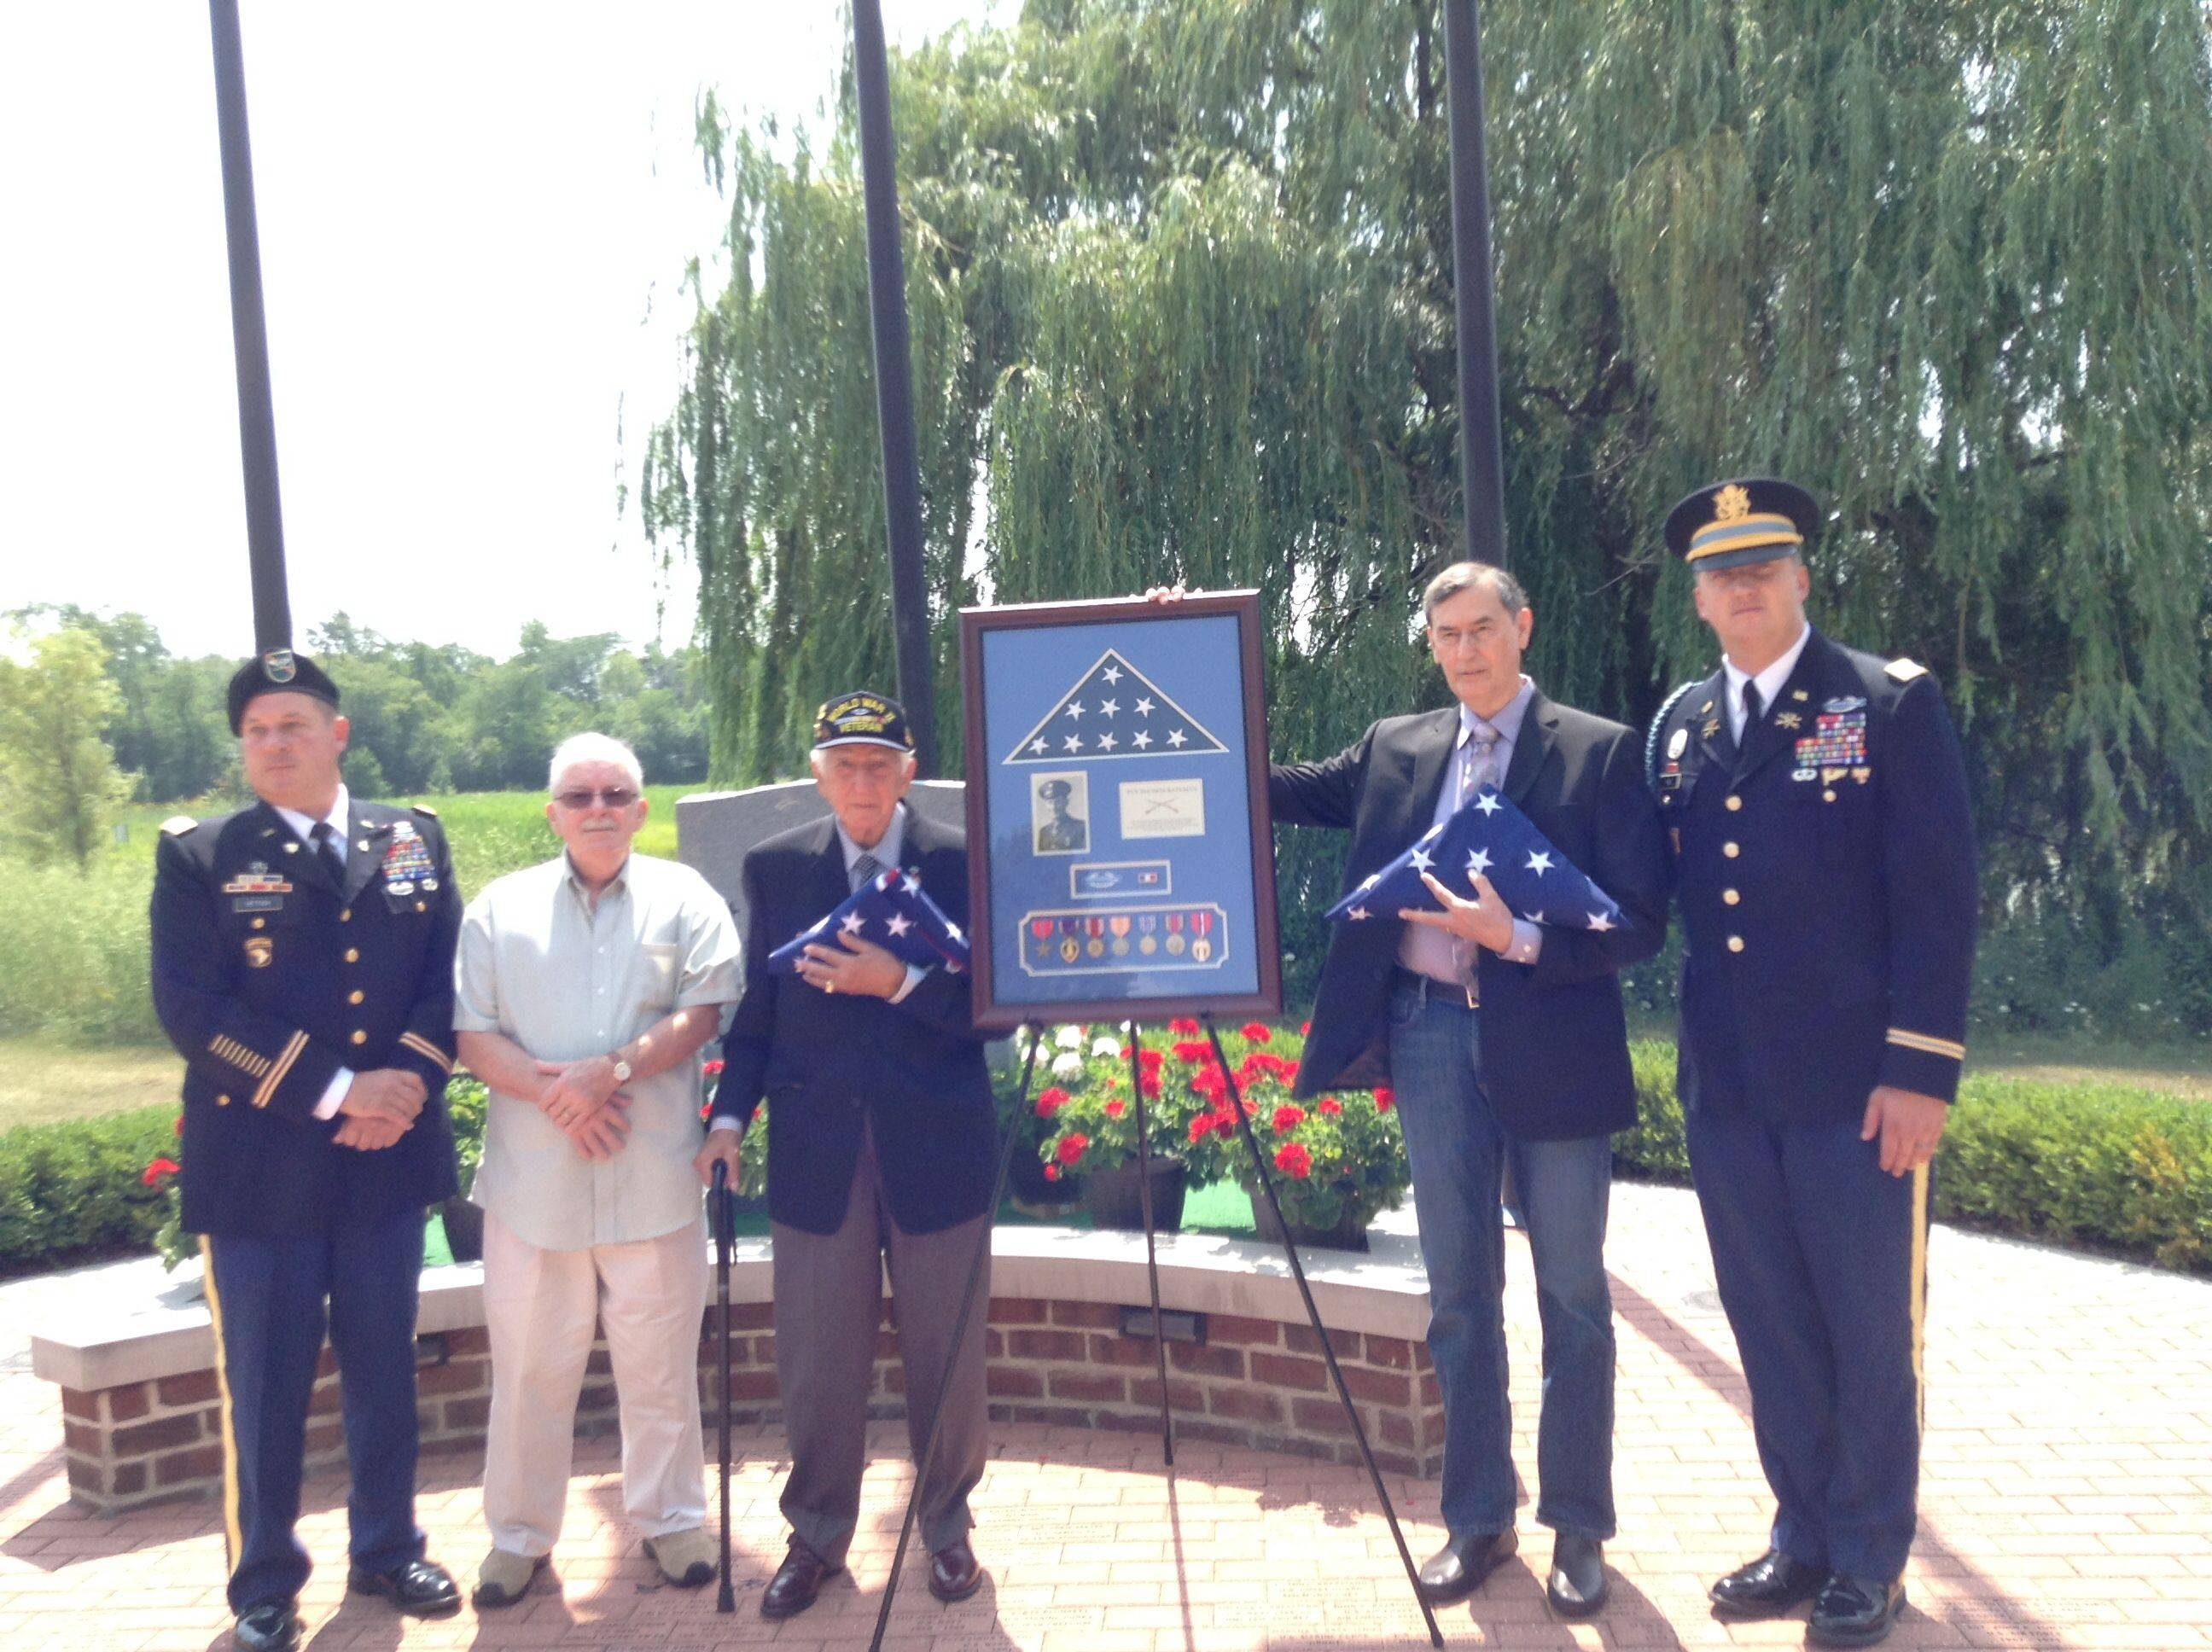 From left, Army Col. Paul J. Hettich, left, Tom McAvoy, former Army Staff Sgt. John Trinca, Thomas Bateman Jr. and Army Cpt. Zachariah Fike at the conclusion of Sunday's ceremony at the College of Lake County Veterans Memorial.